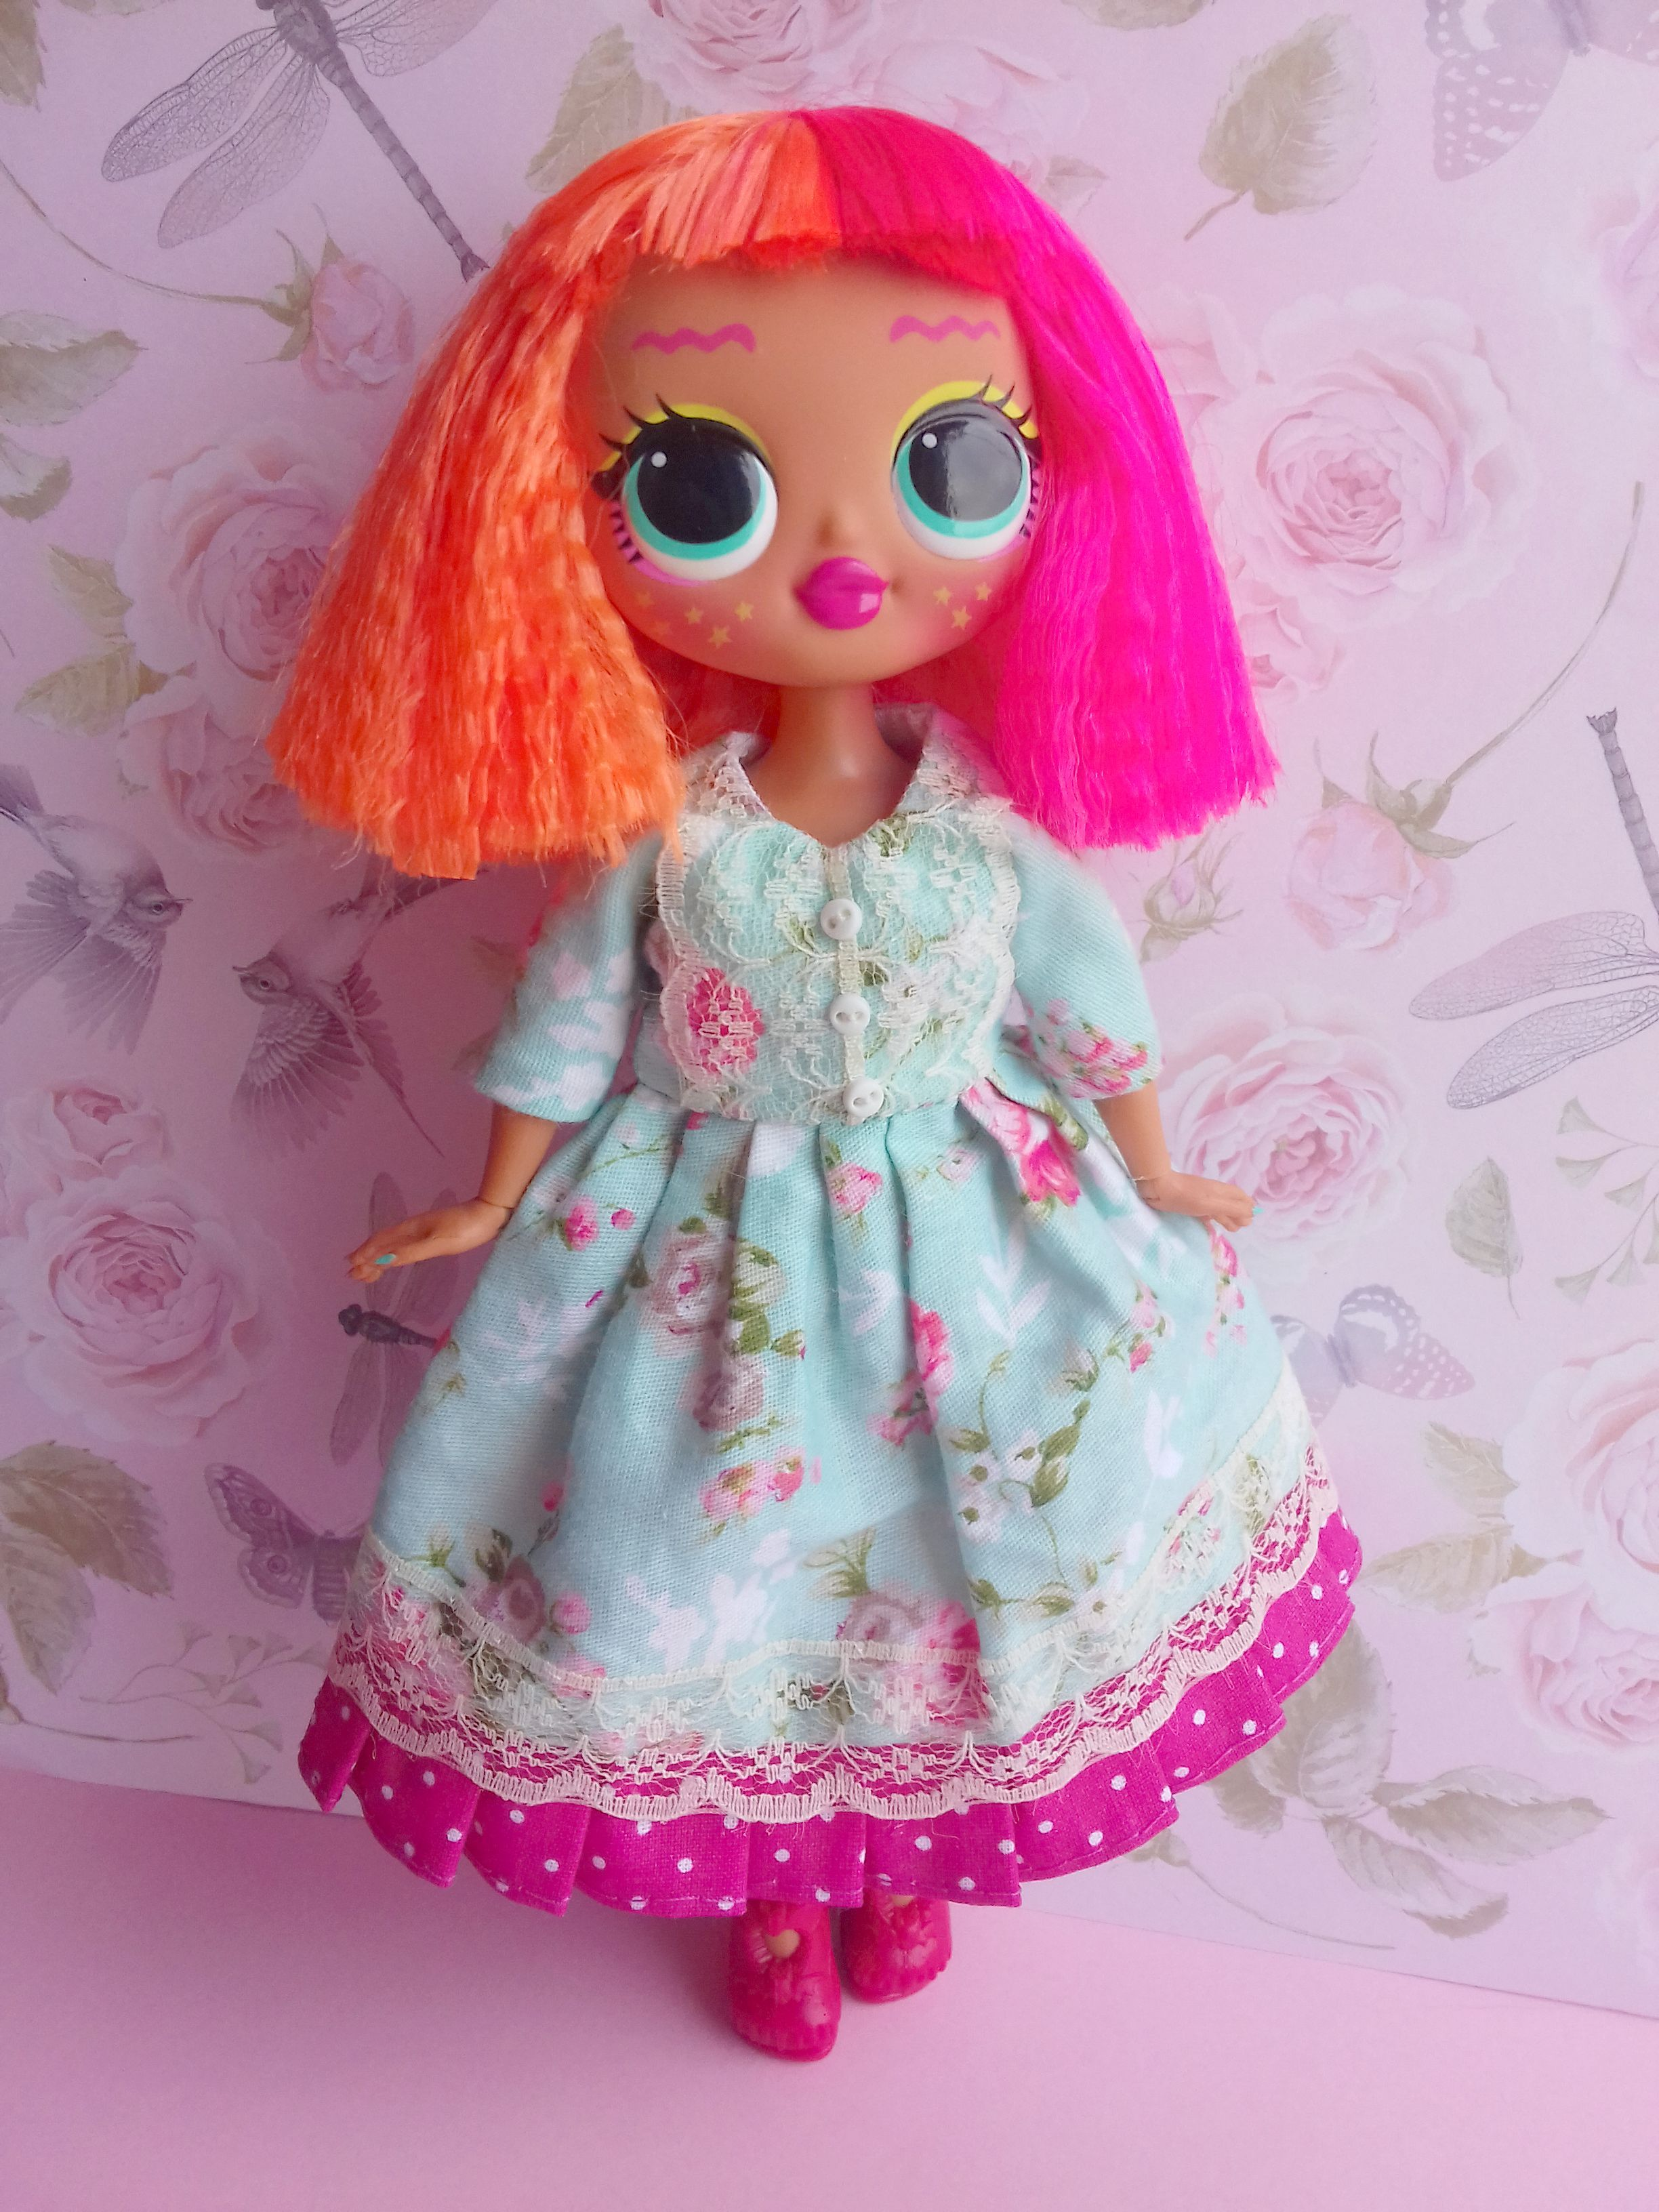 Dress for L.O.L. Surprise! O.M.G. dolls in 2020 Lol